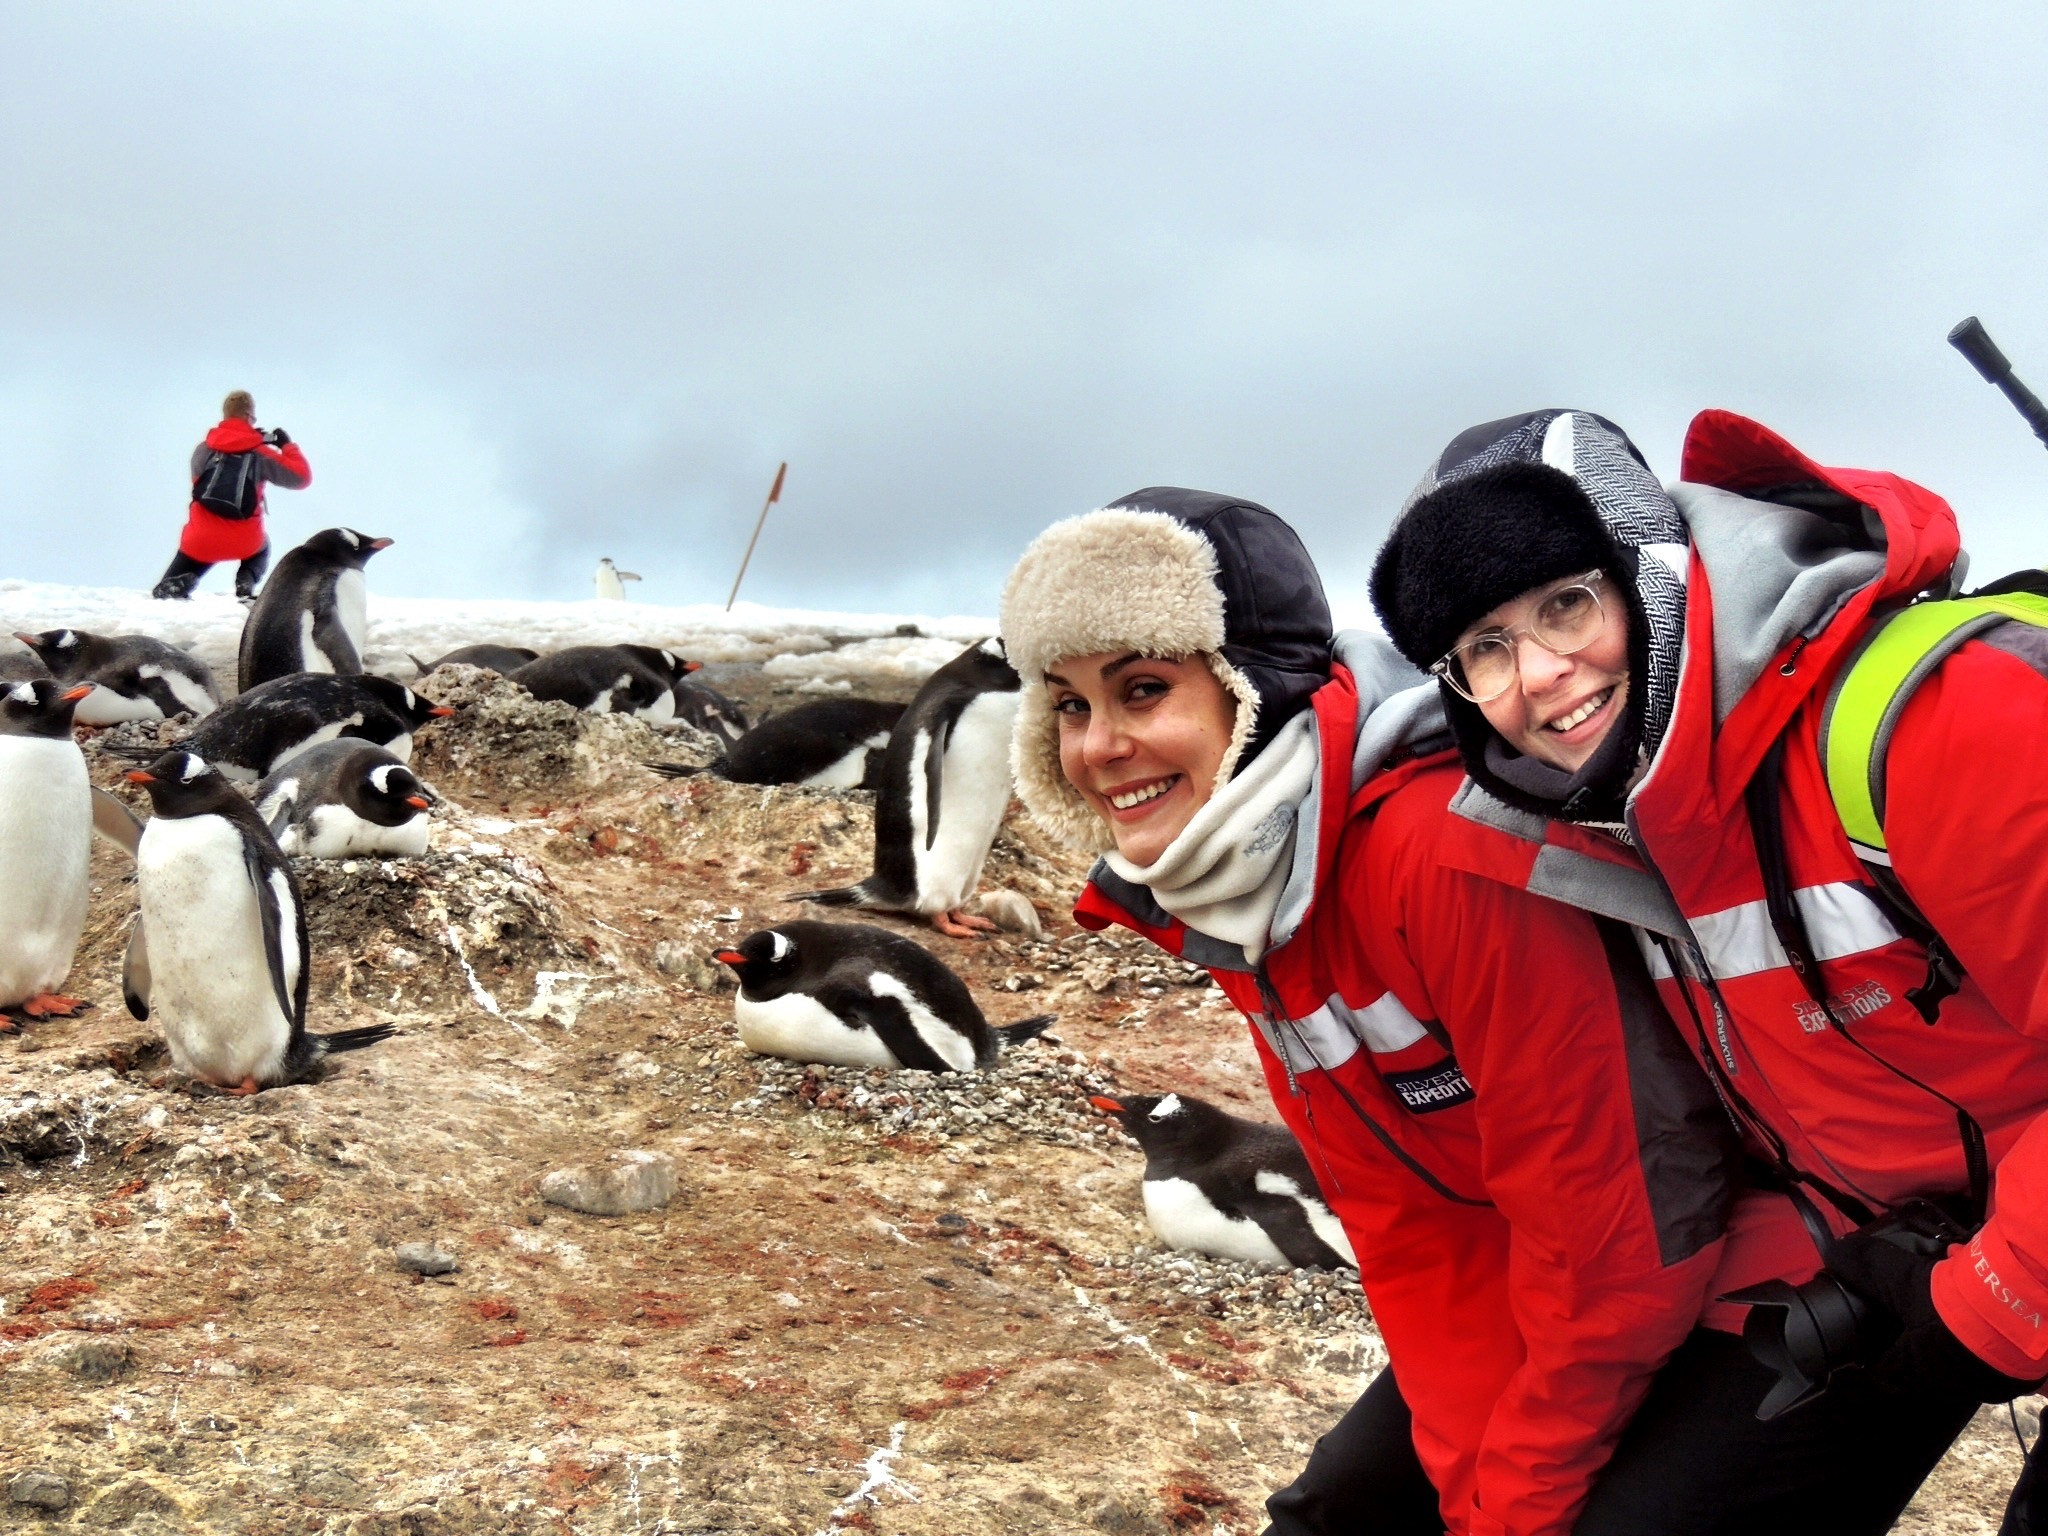 Emma and I sharing an excellent adventure in Antarctica